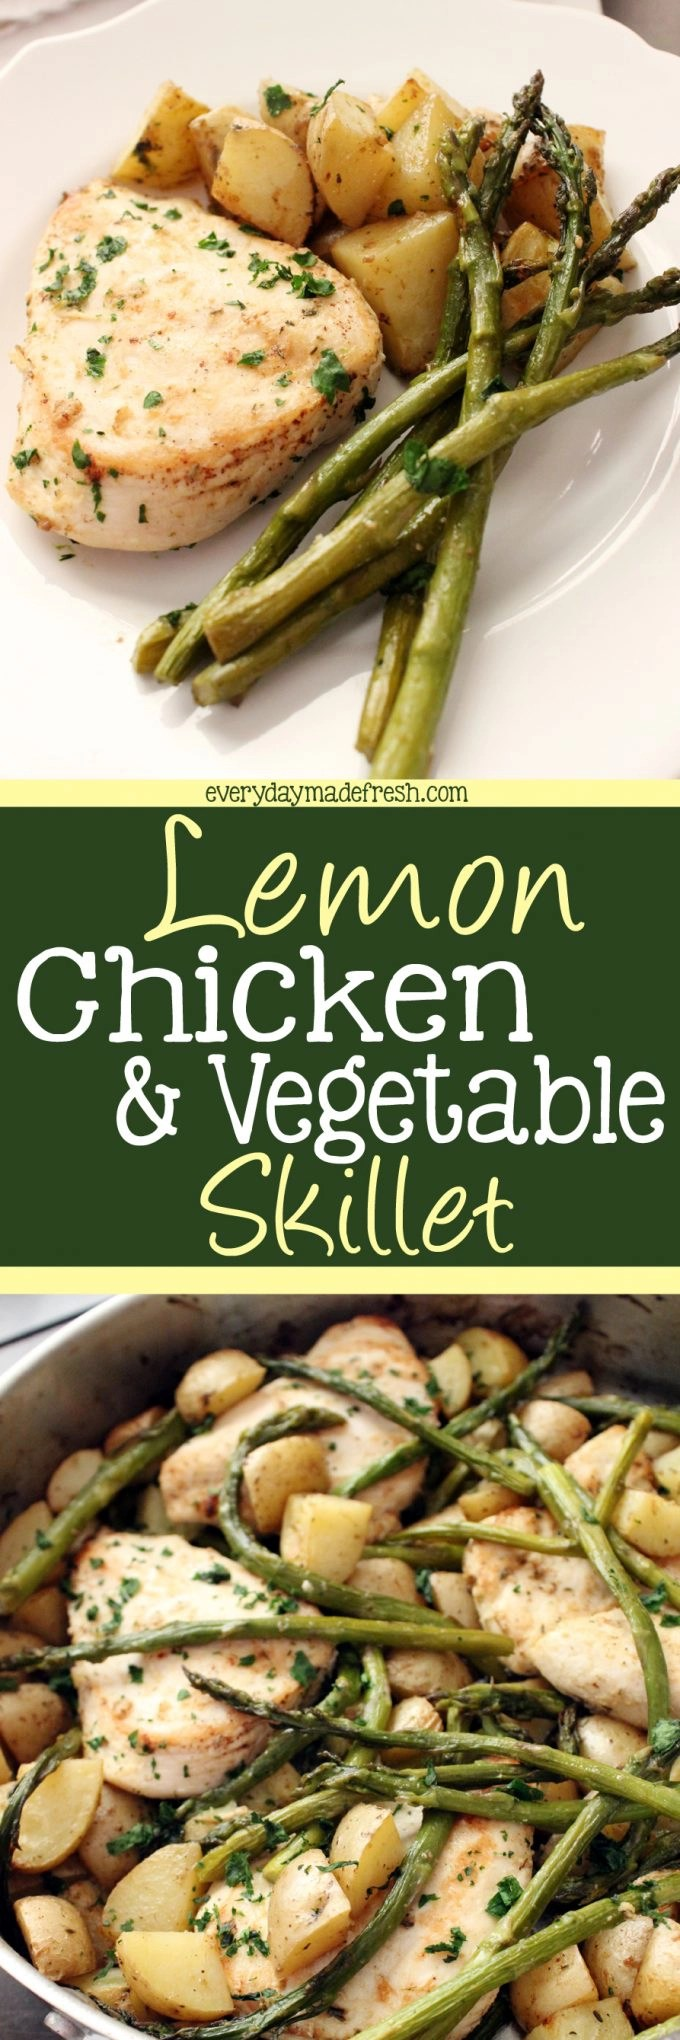 Need a quick and easy dinner recipe? One that has meat, vegetable, and starch? This Lemon Chicken & Vegetable Skillet is the answer! | EverydayMadeFresh.com